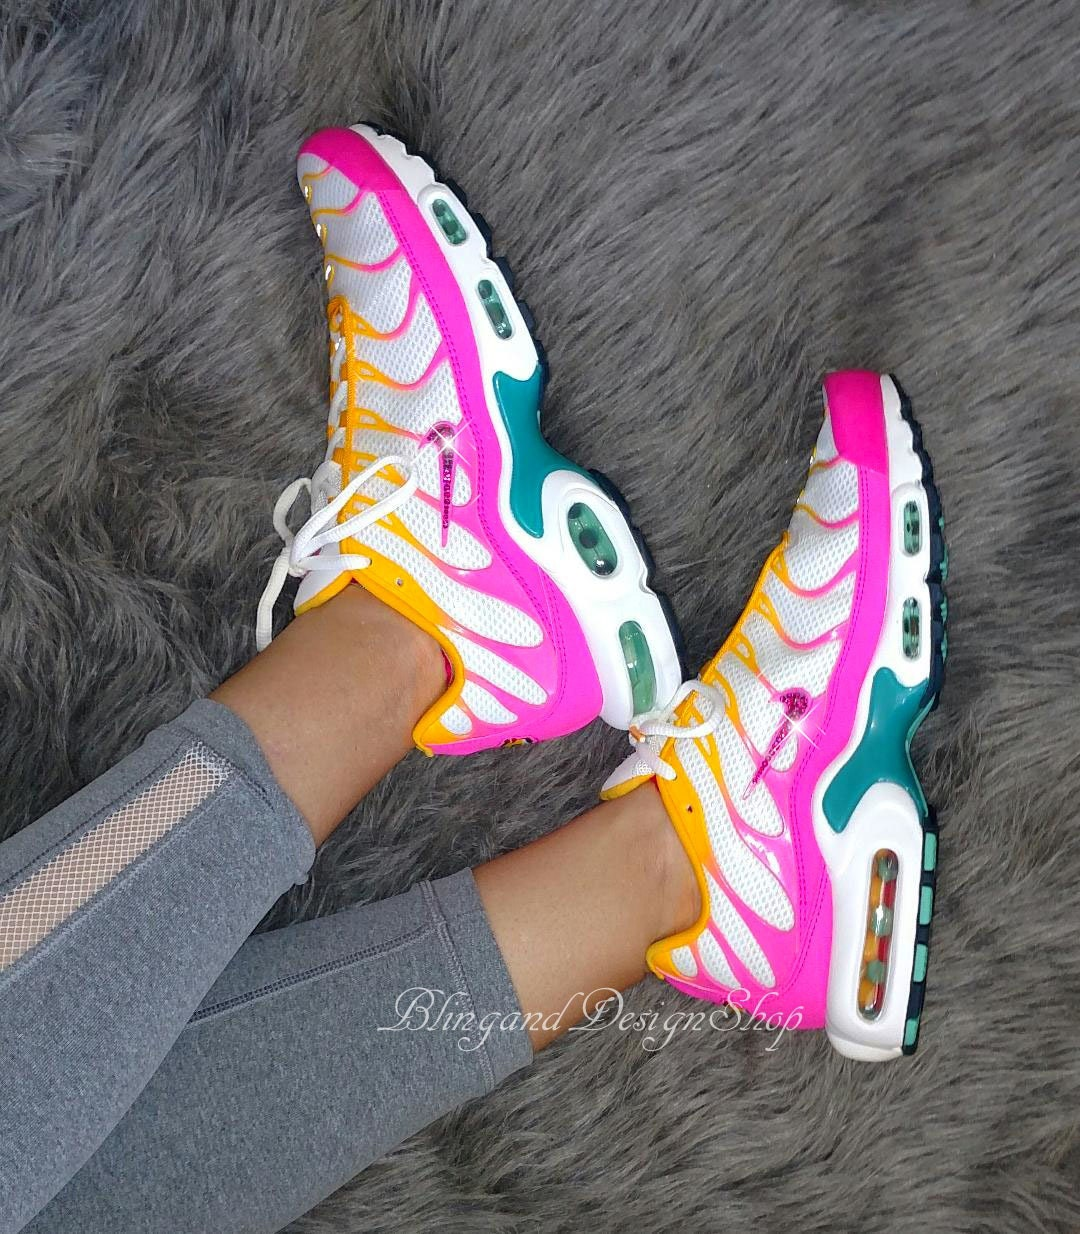 Details about Women's Custom Swarovski NIKE Air Max Thea Bling Shoes Size 8.5 US